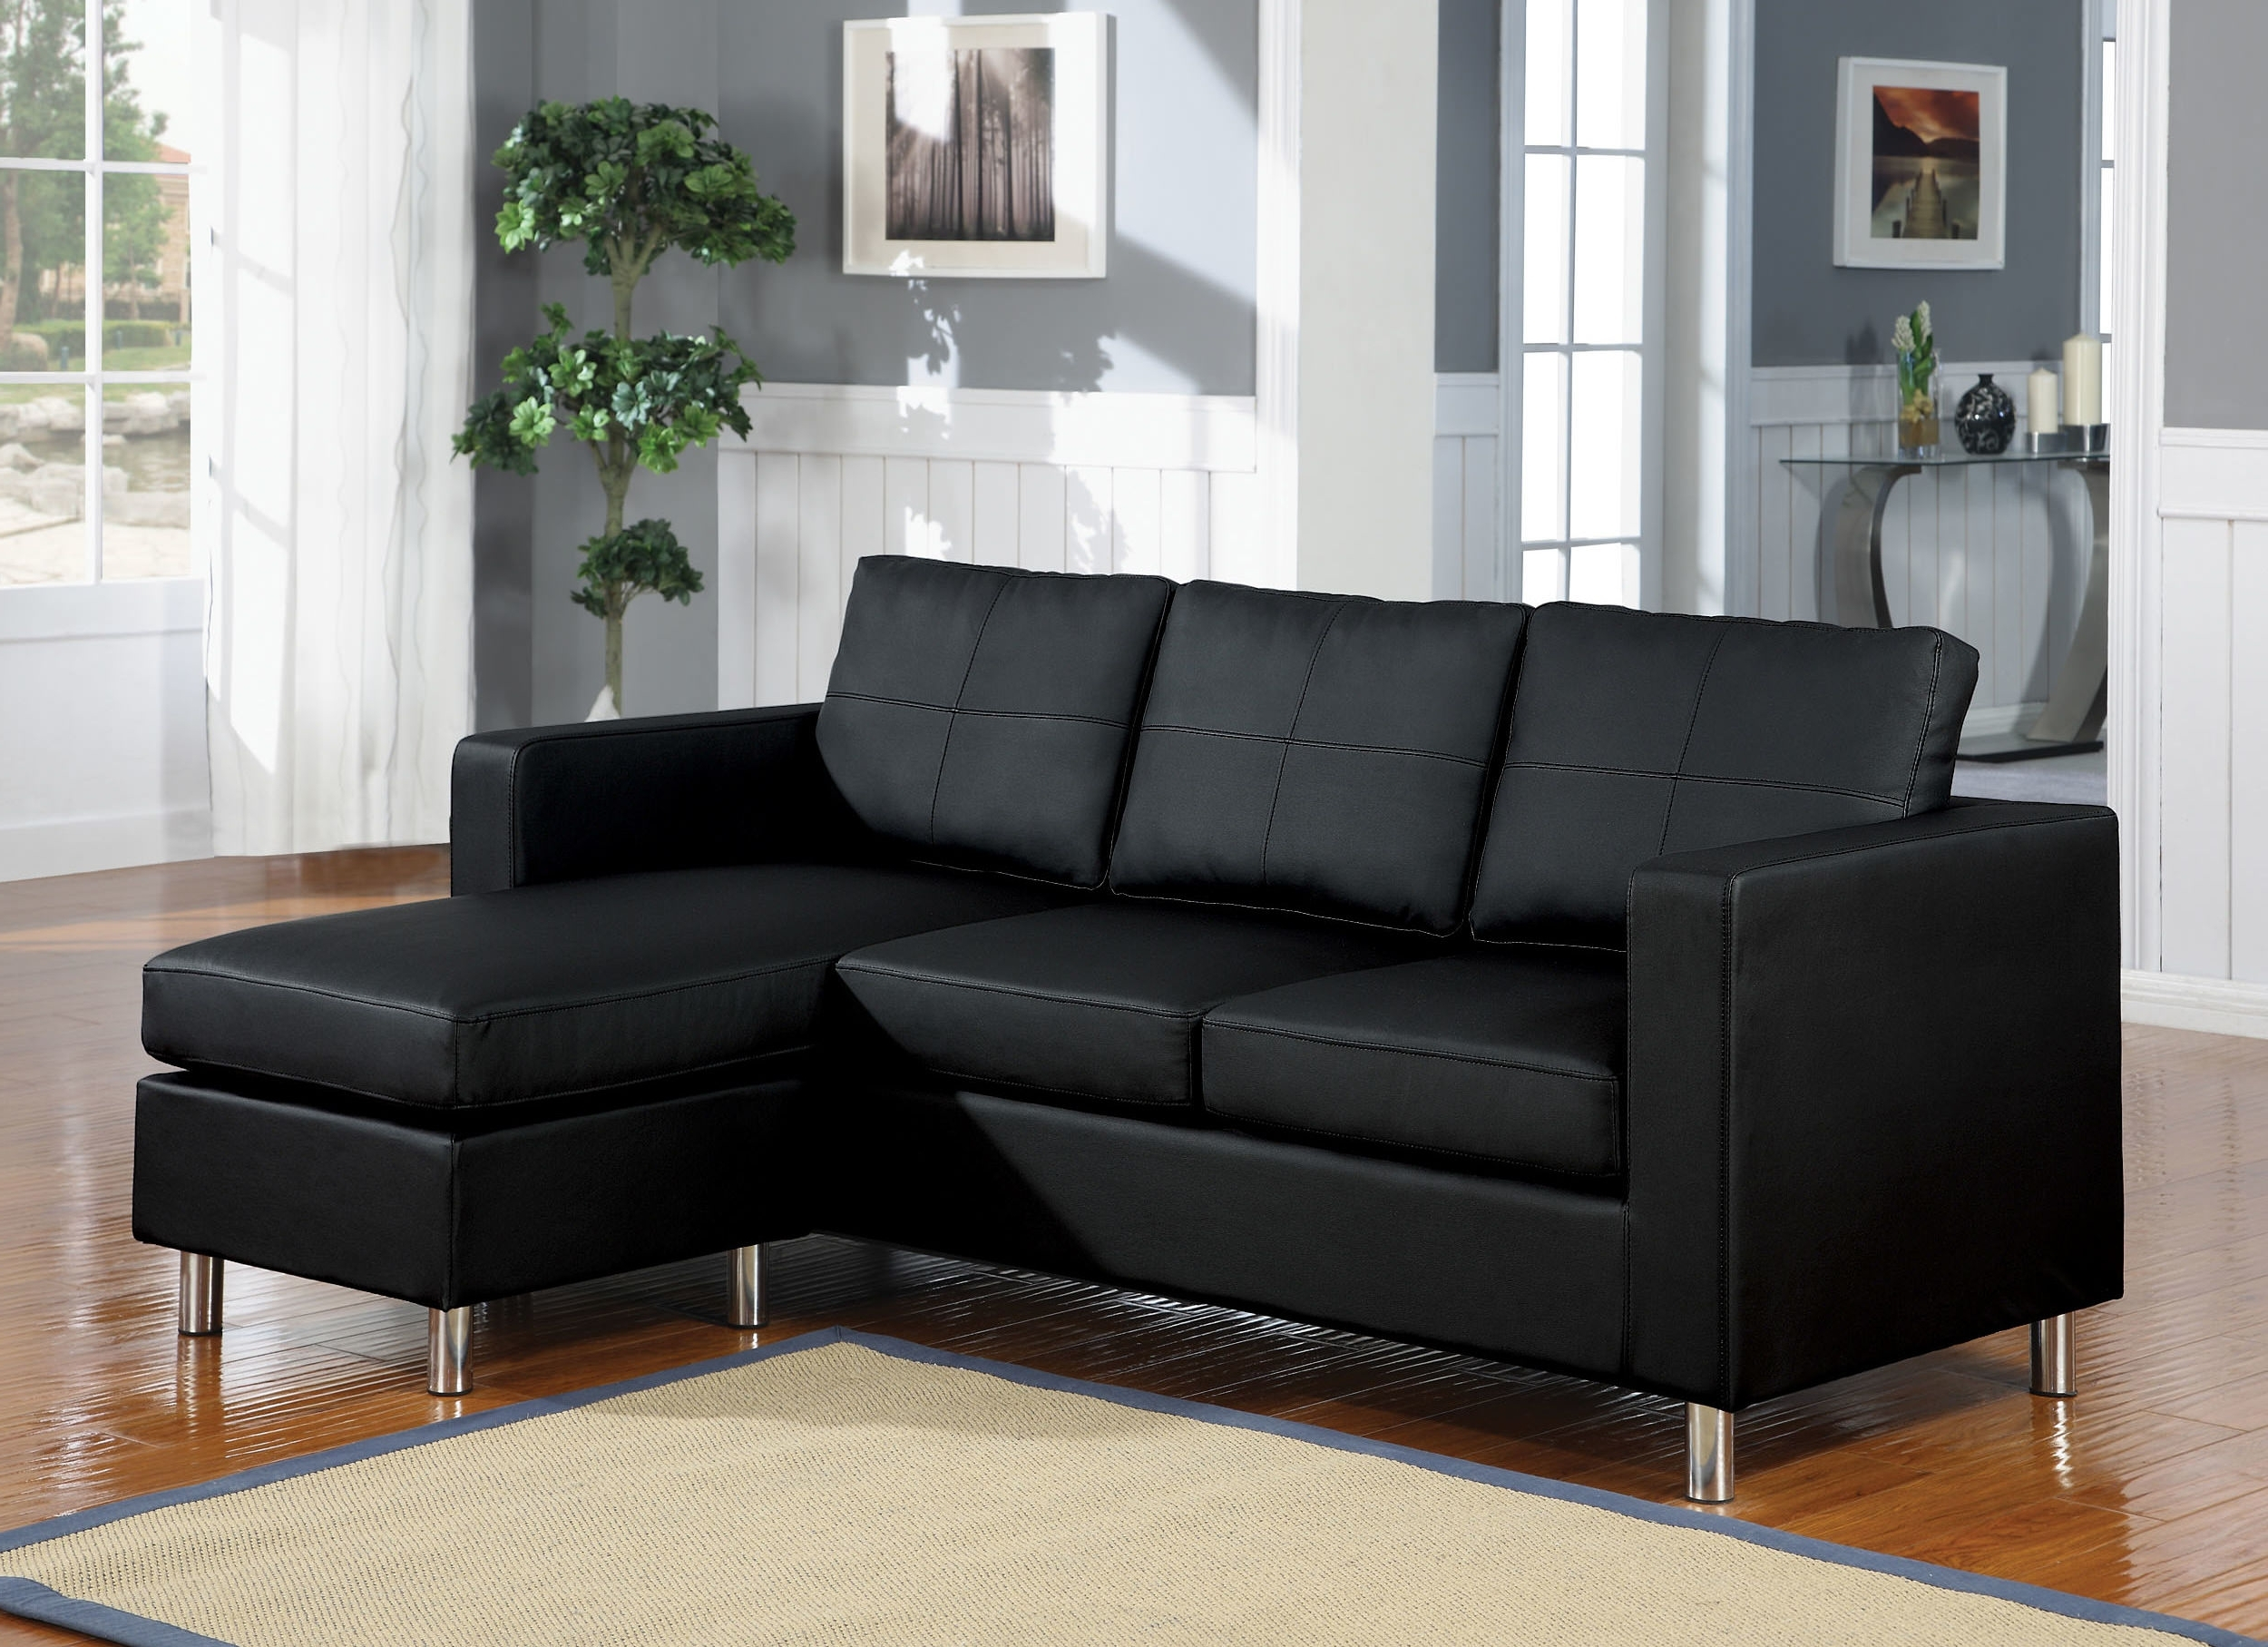 Design Intended For Leather Modular Sectional Sofas (Gallery 9 of 20)